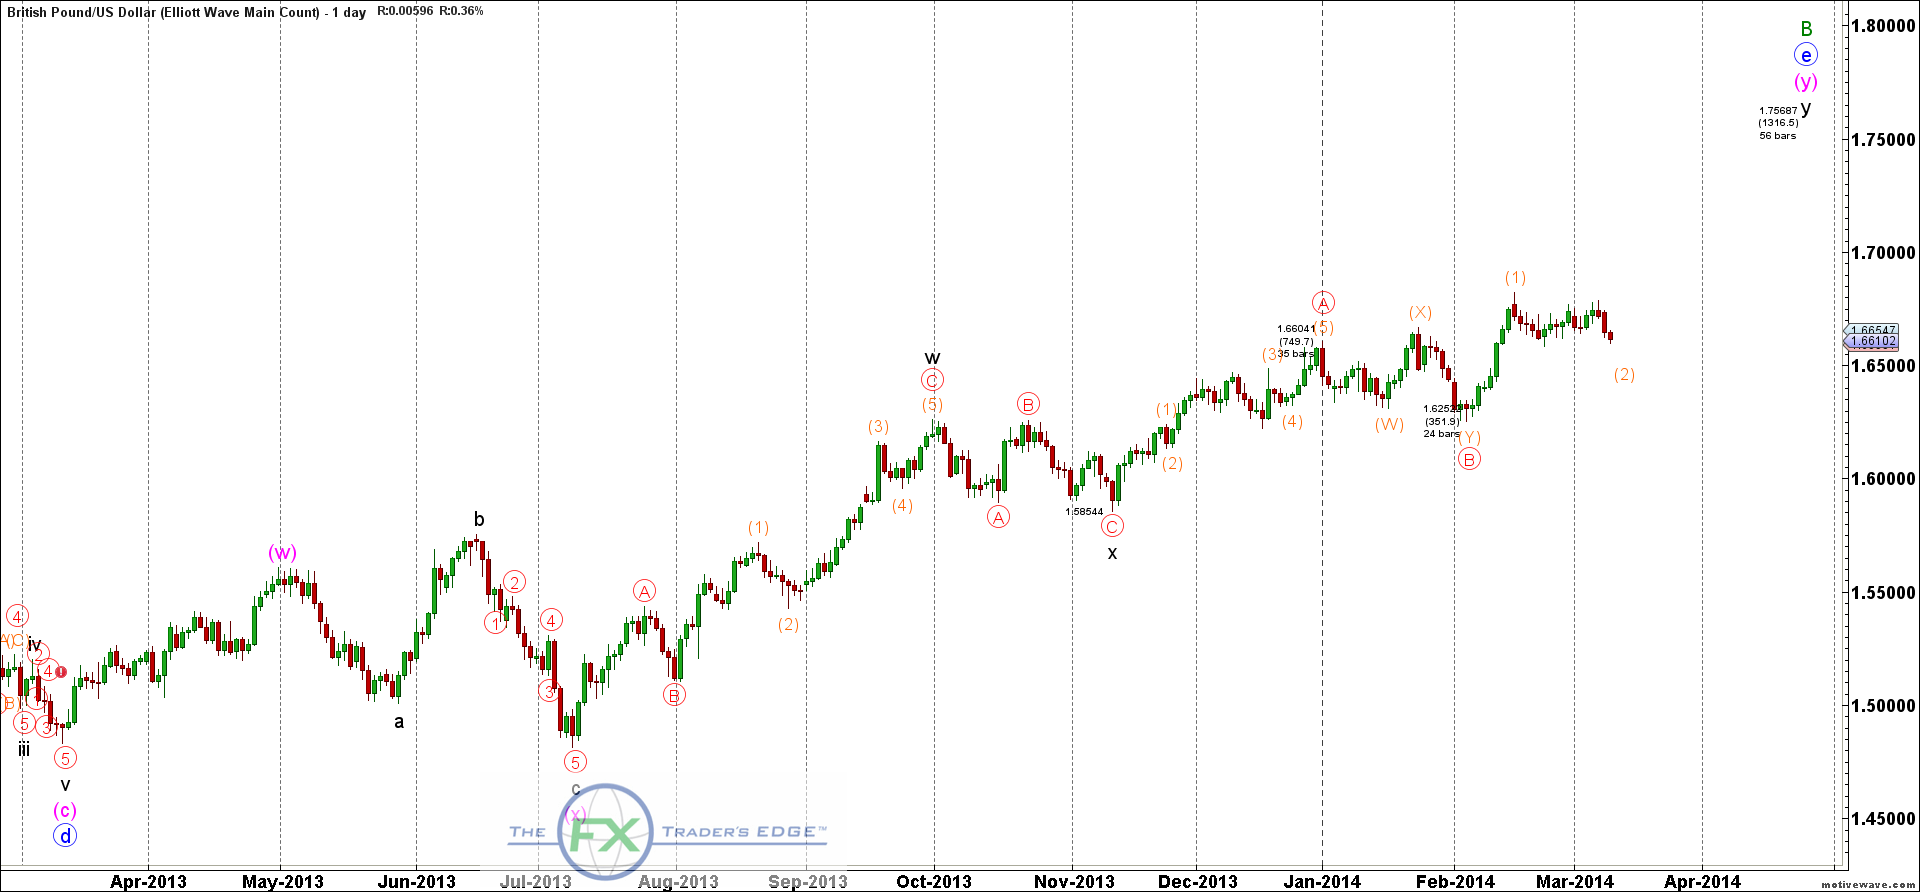 GBPUSD-Elliott-Wave-Main-Count-Mar-11-0818-AM-1-day